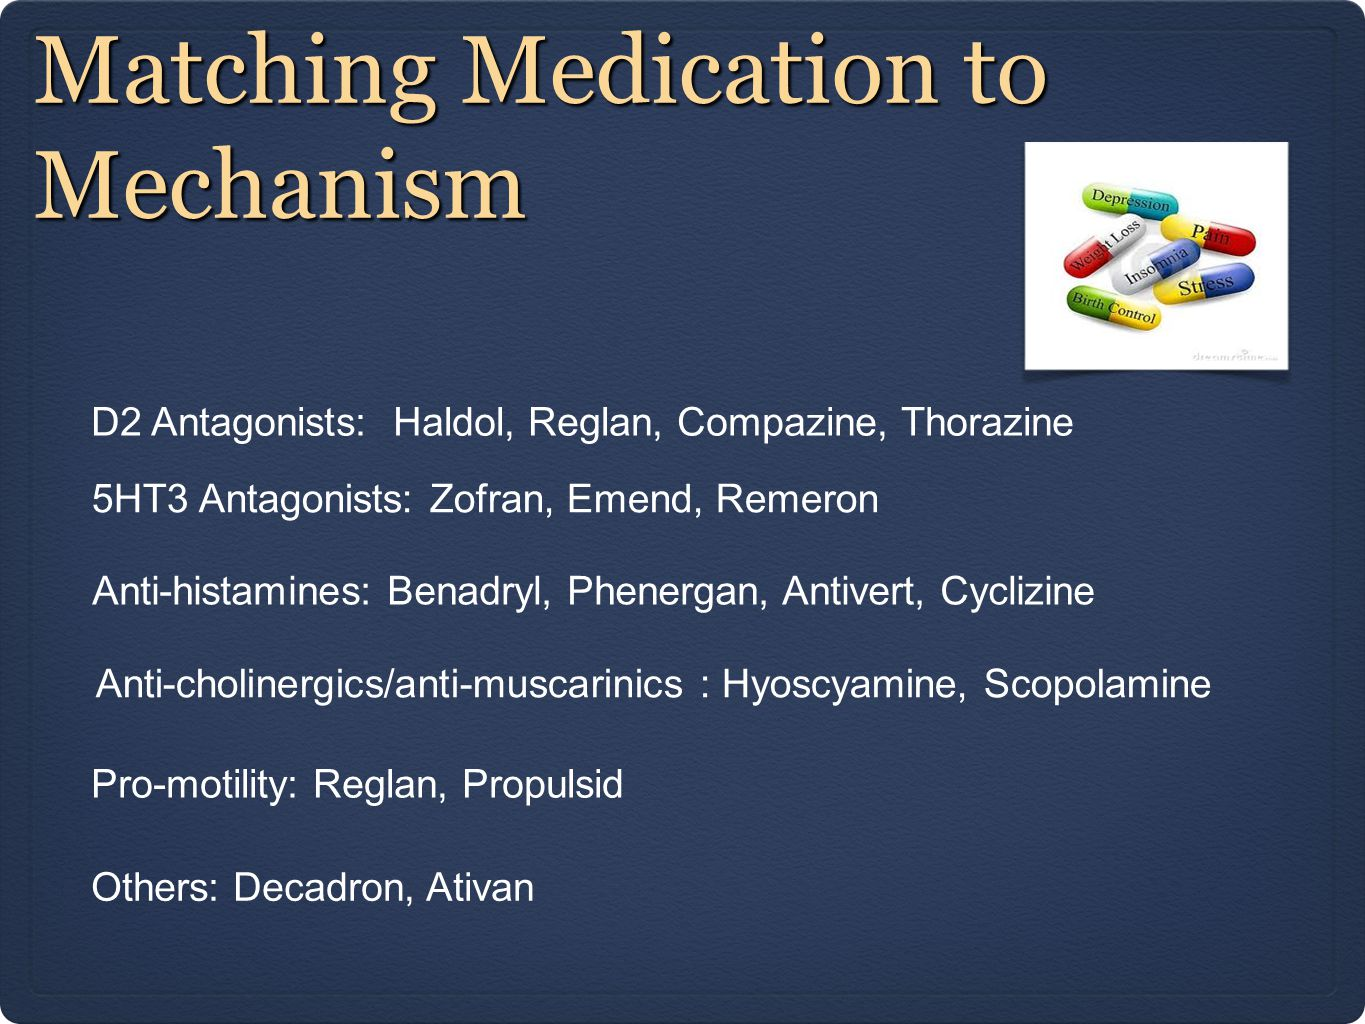 Matching Medication to Mechanism